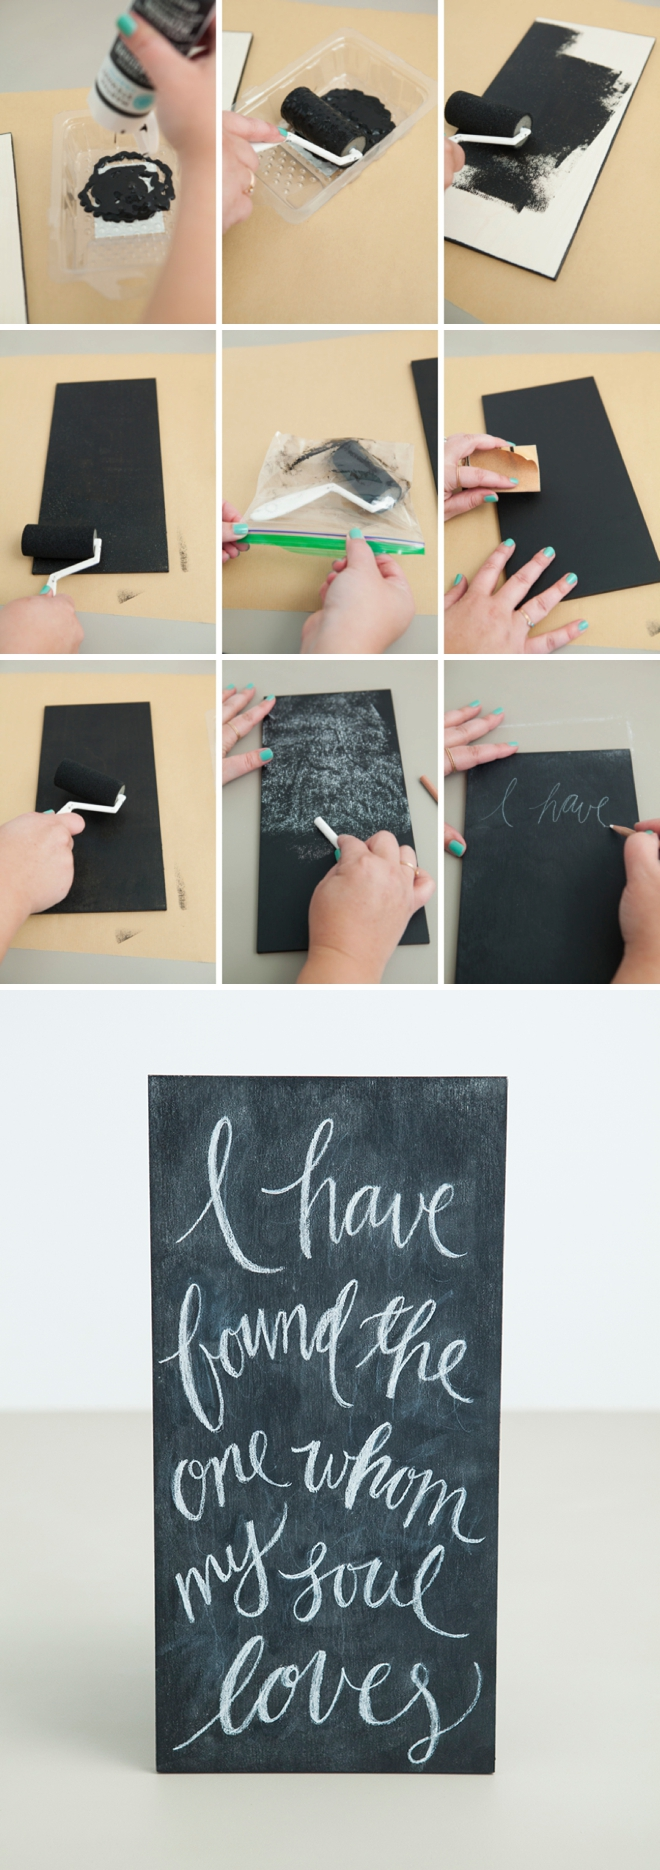 How to make anything a chalkboard surface the RIGHT way!